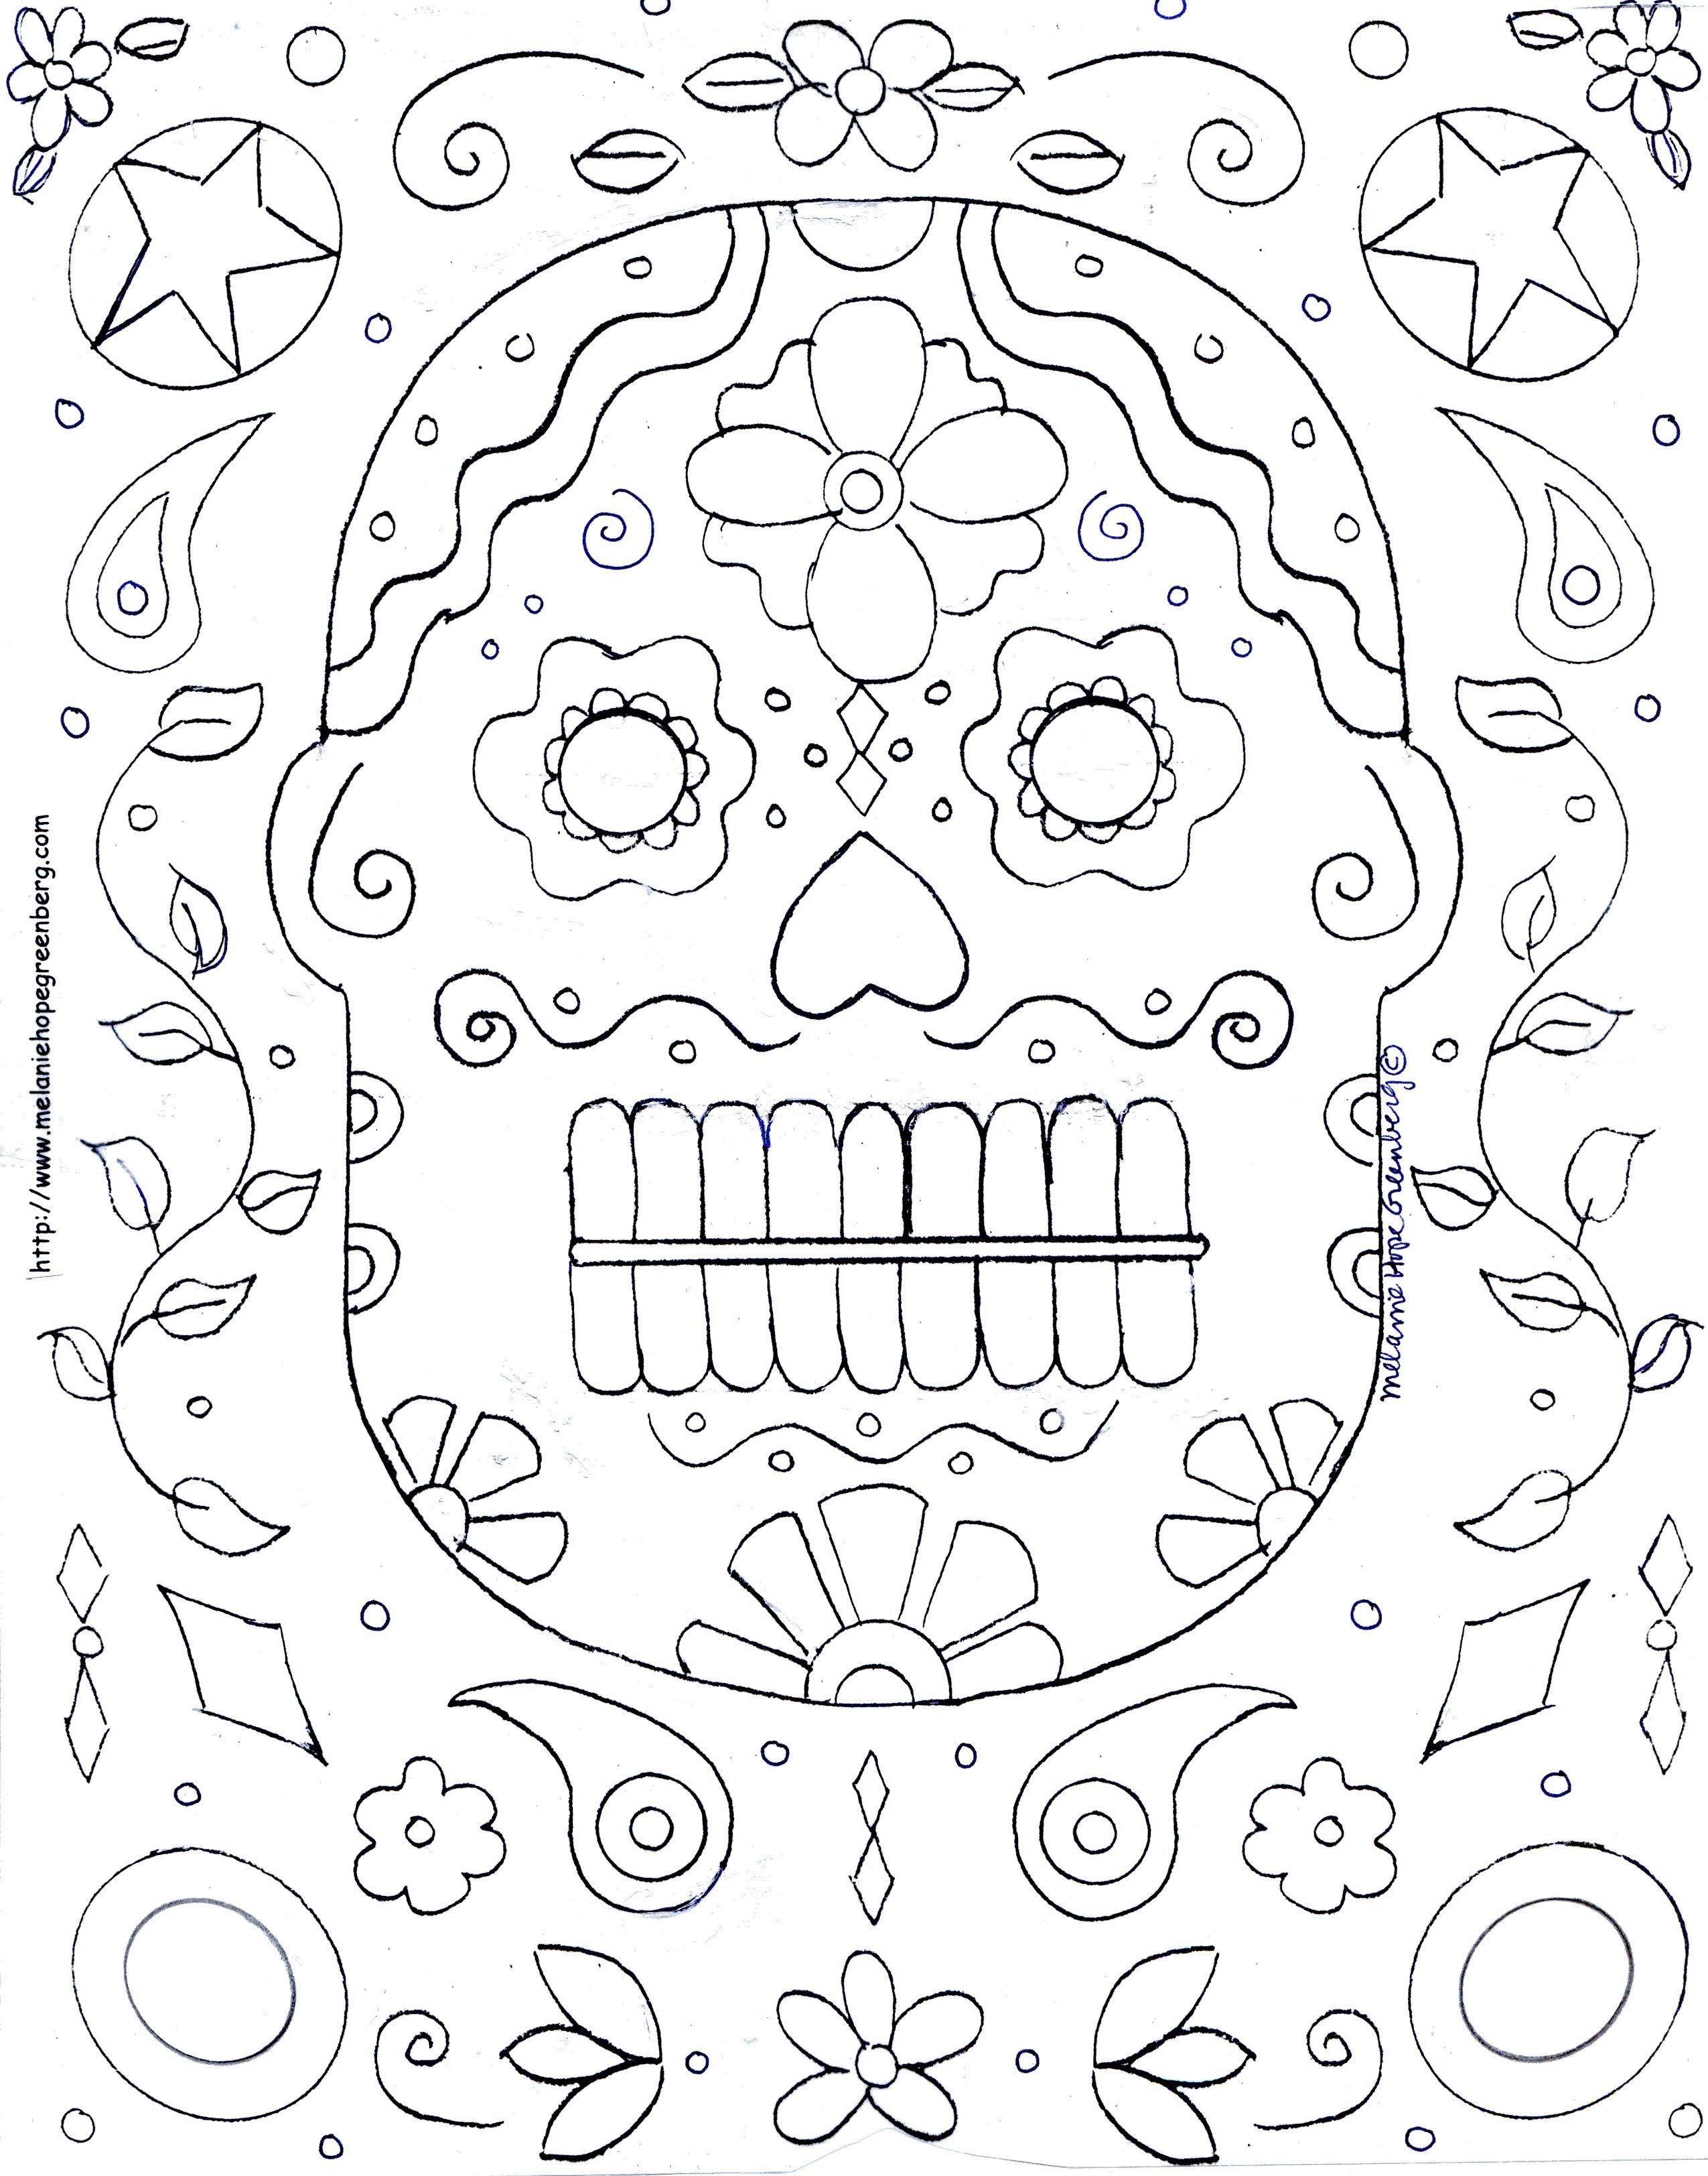 Halloween Mask Coloring Page From Kid Lit Illustrator Melanie Hope Greenberg Math Coloring Worksheets School Coloring Pages Halloween Coloring Pages